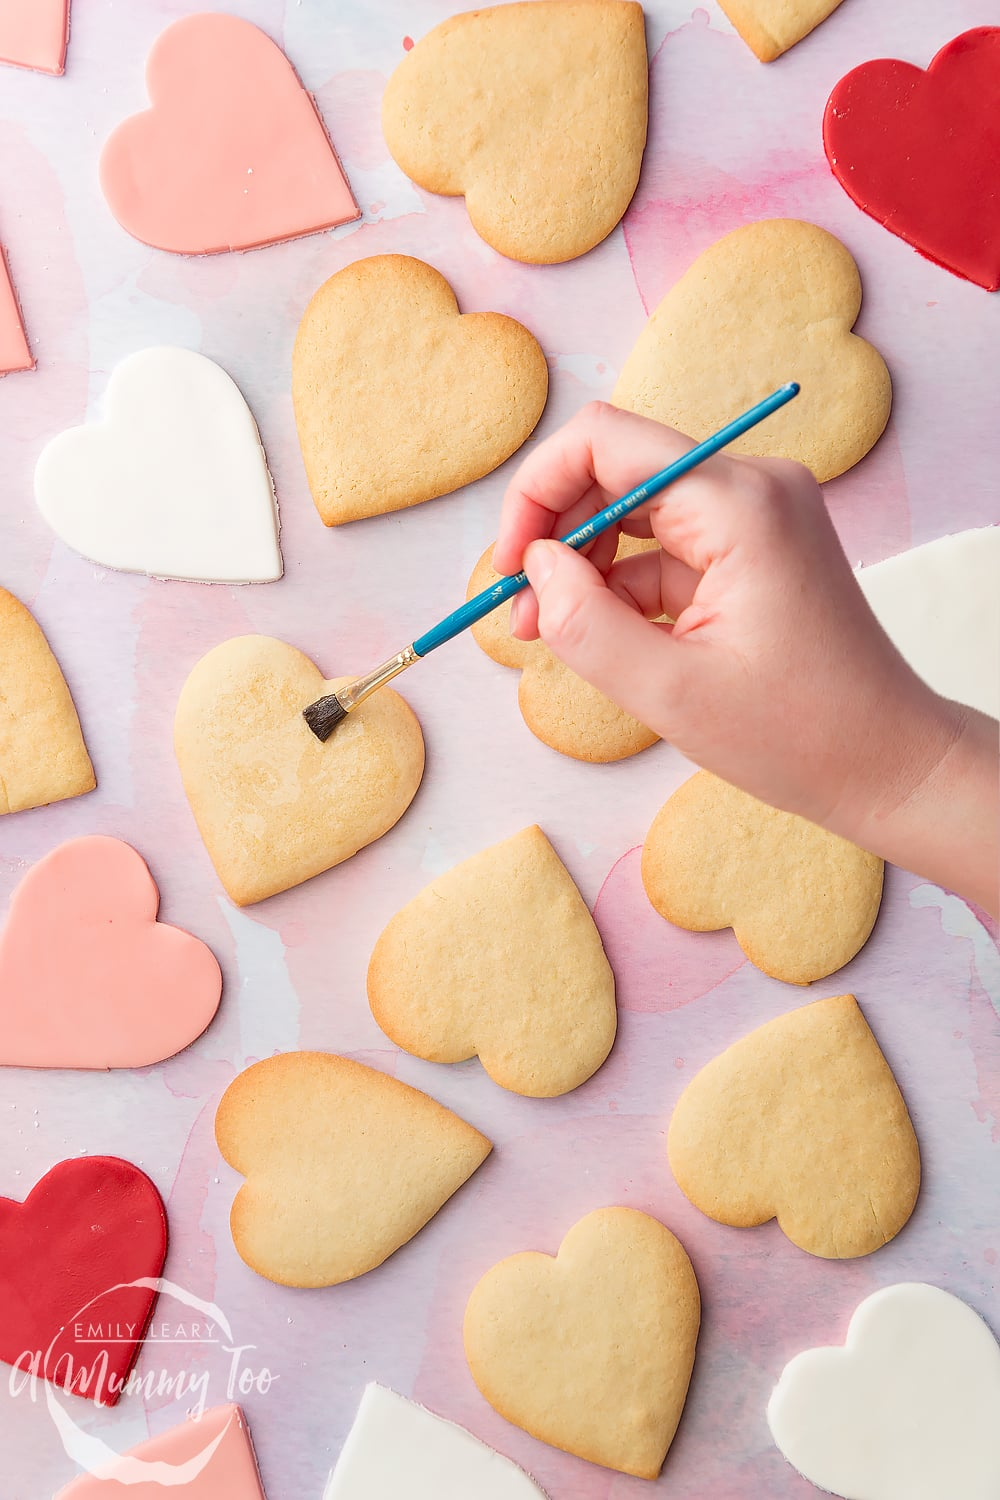 Overhead shot of a hand holding a brush and glazing heart shaped biscuits with icing sugar with the A Mummy Too logo in the bottom left hand corner